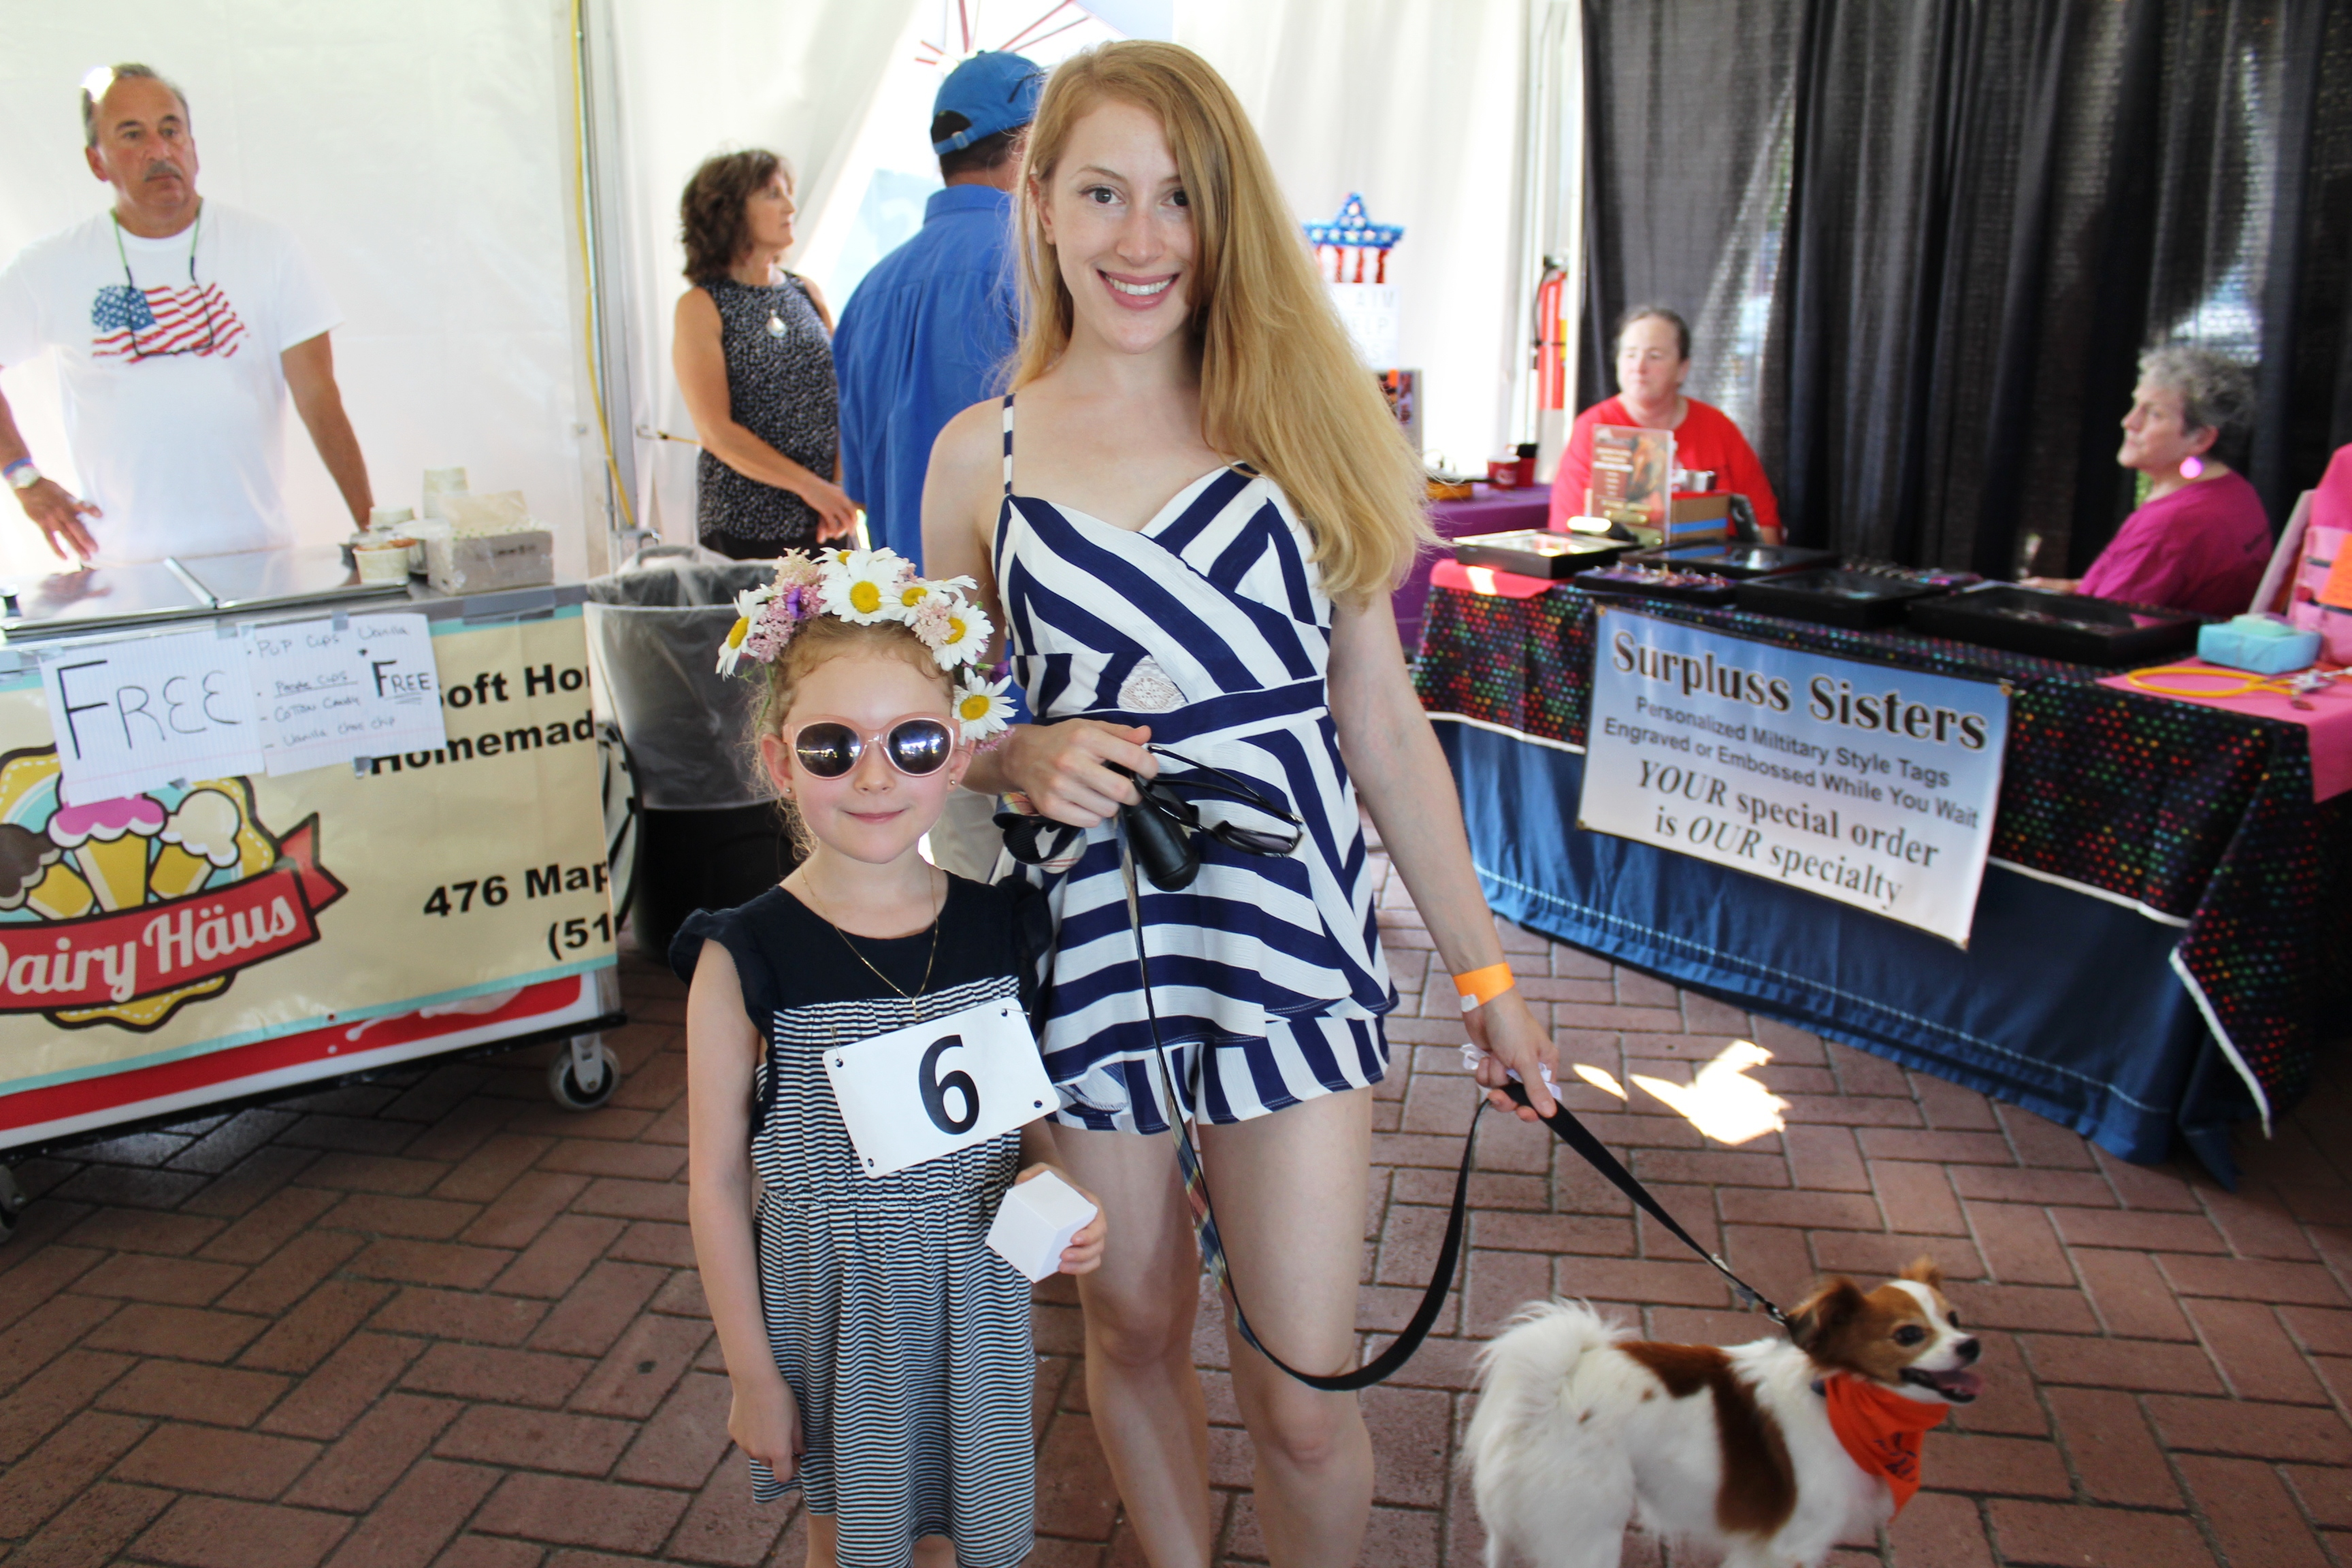 Teen girl with young girl smiling with dog at the Saratoga Dog & Pony Show to benefit AIM Services, Inc.